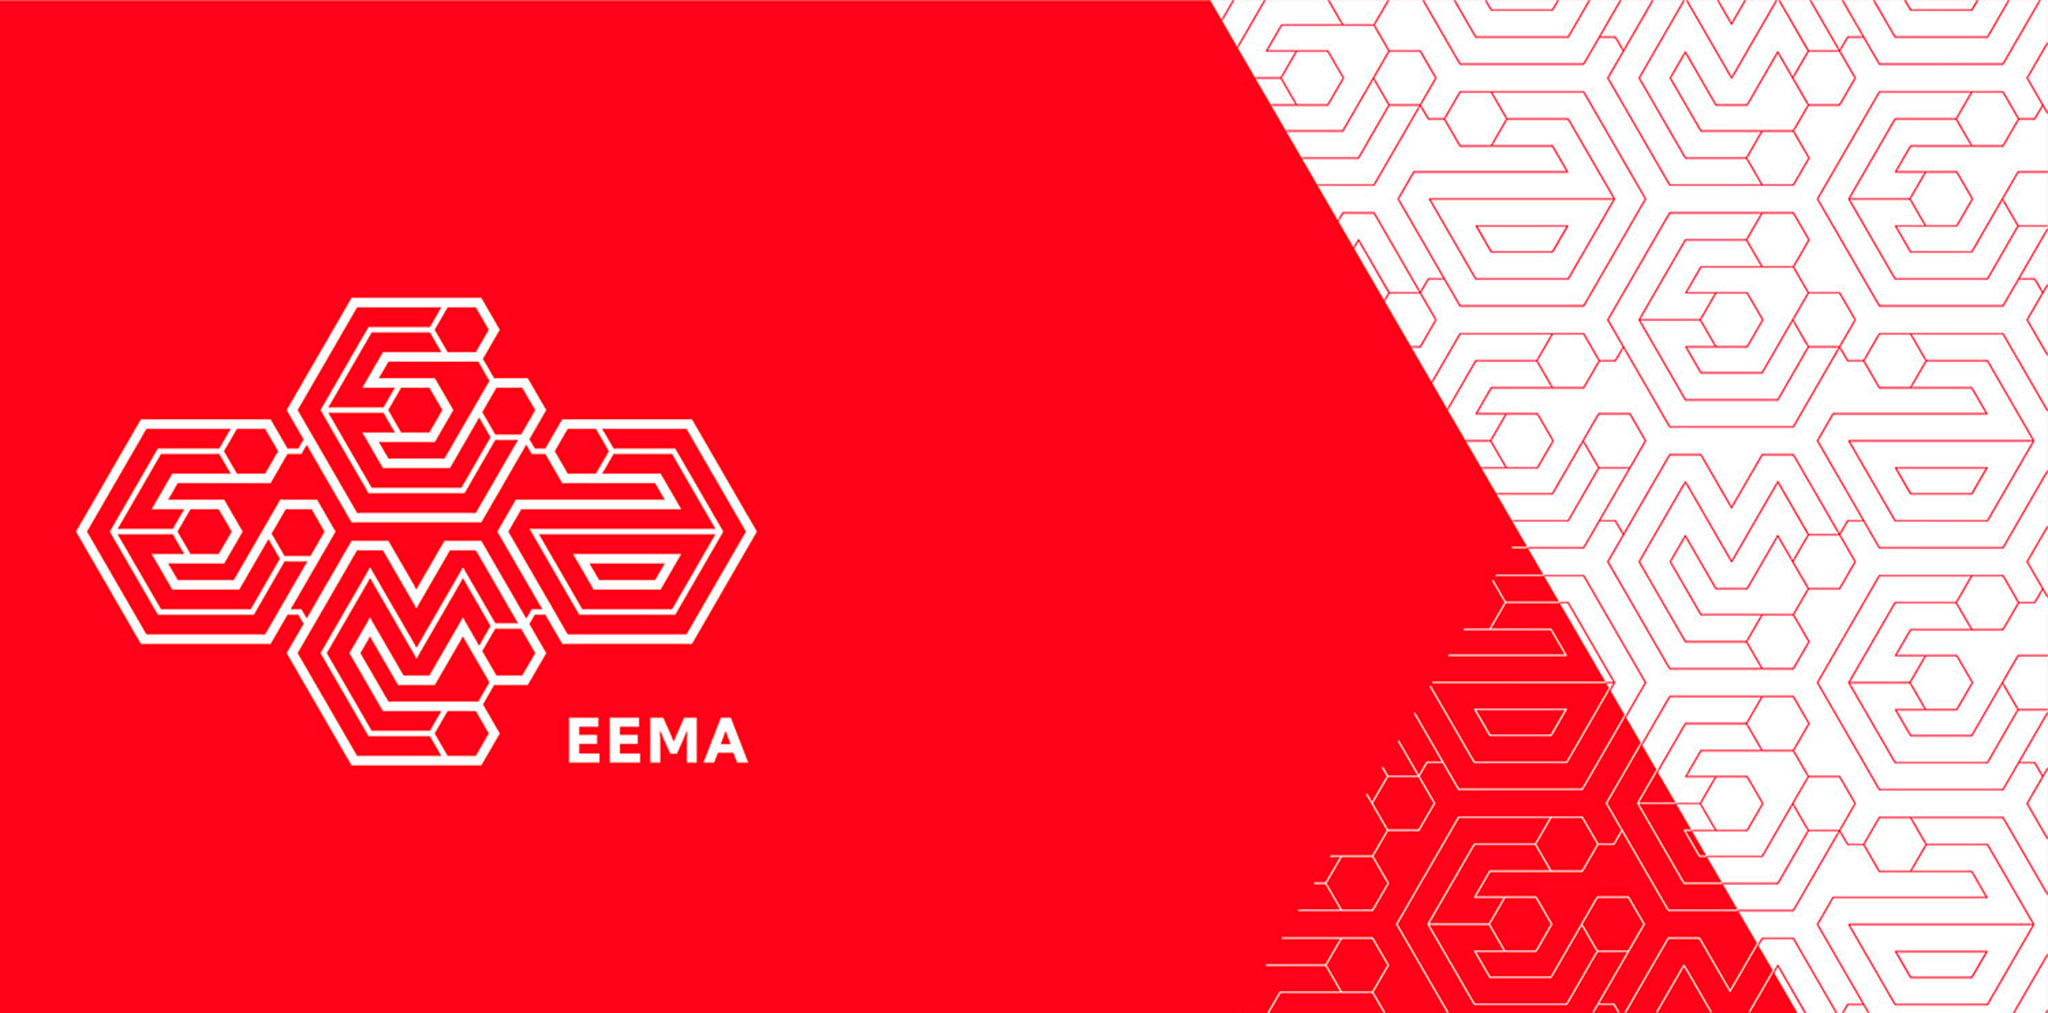 EEMA visual brand